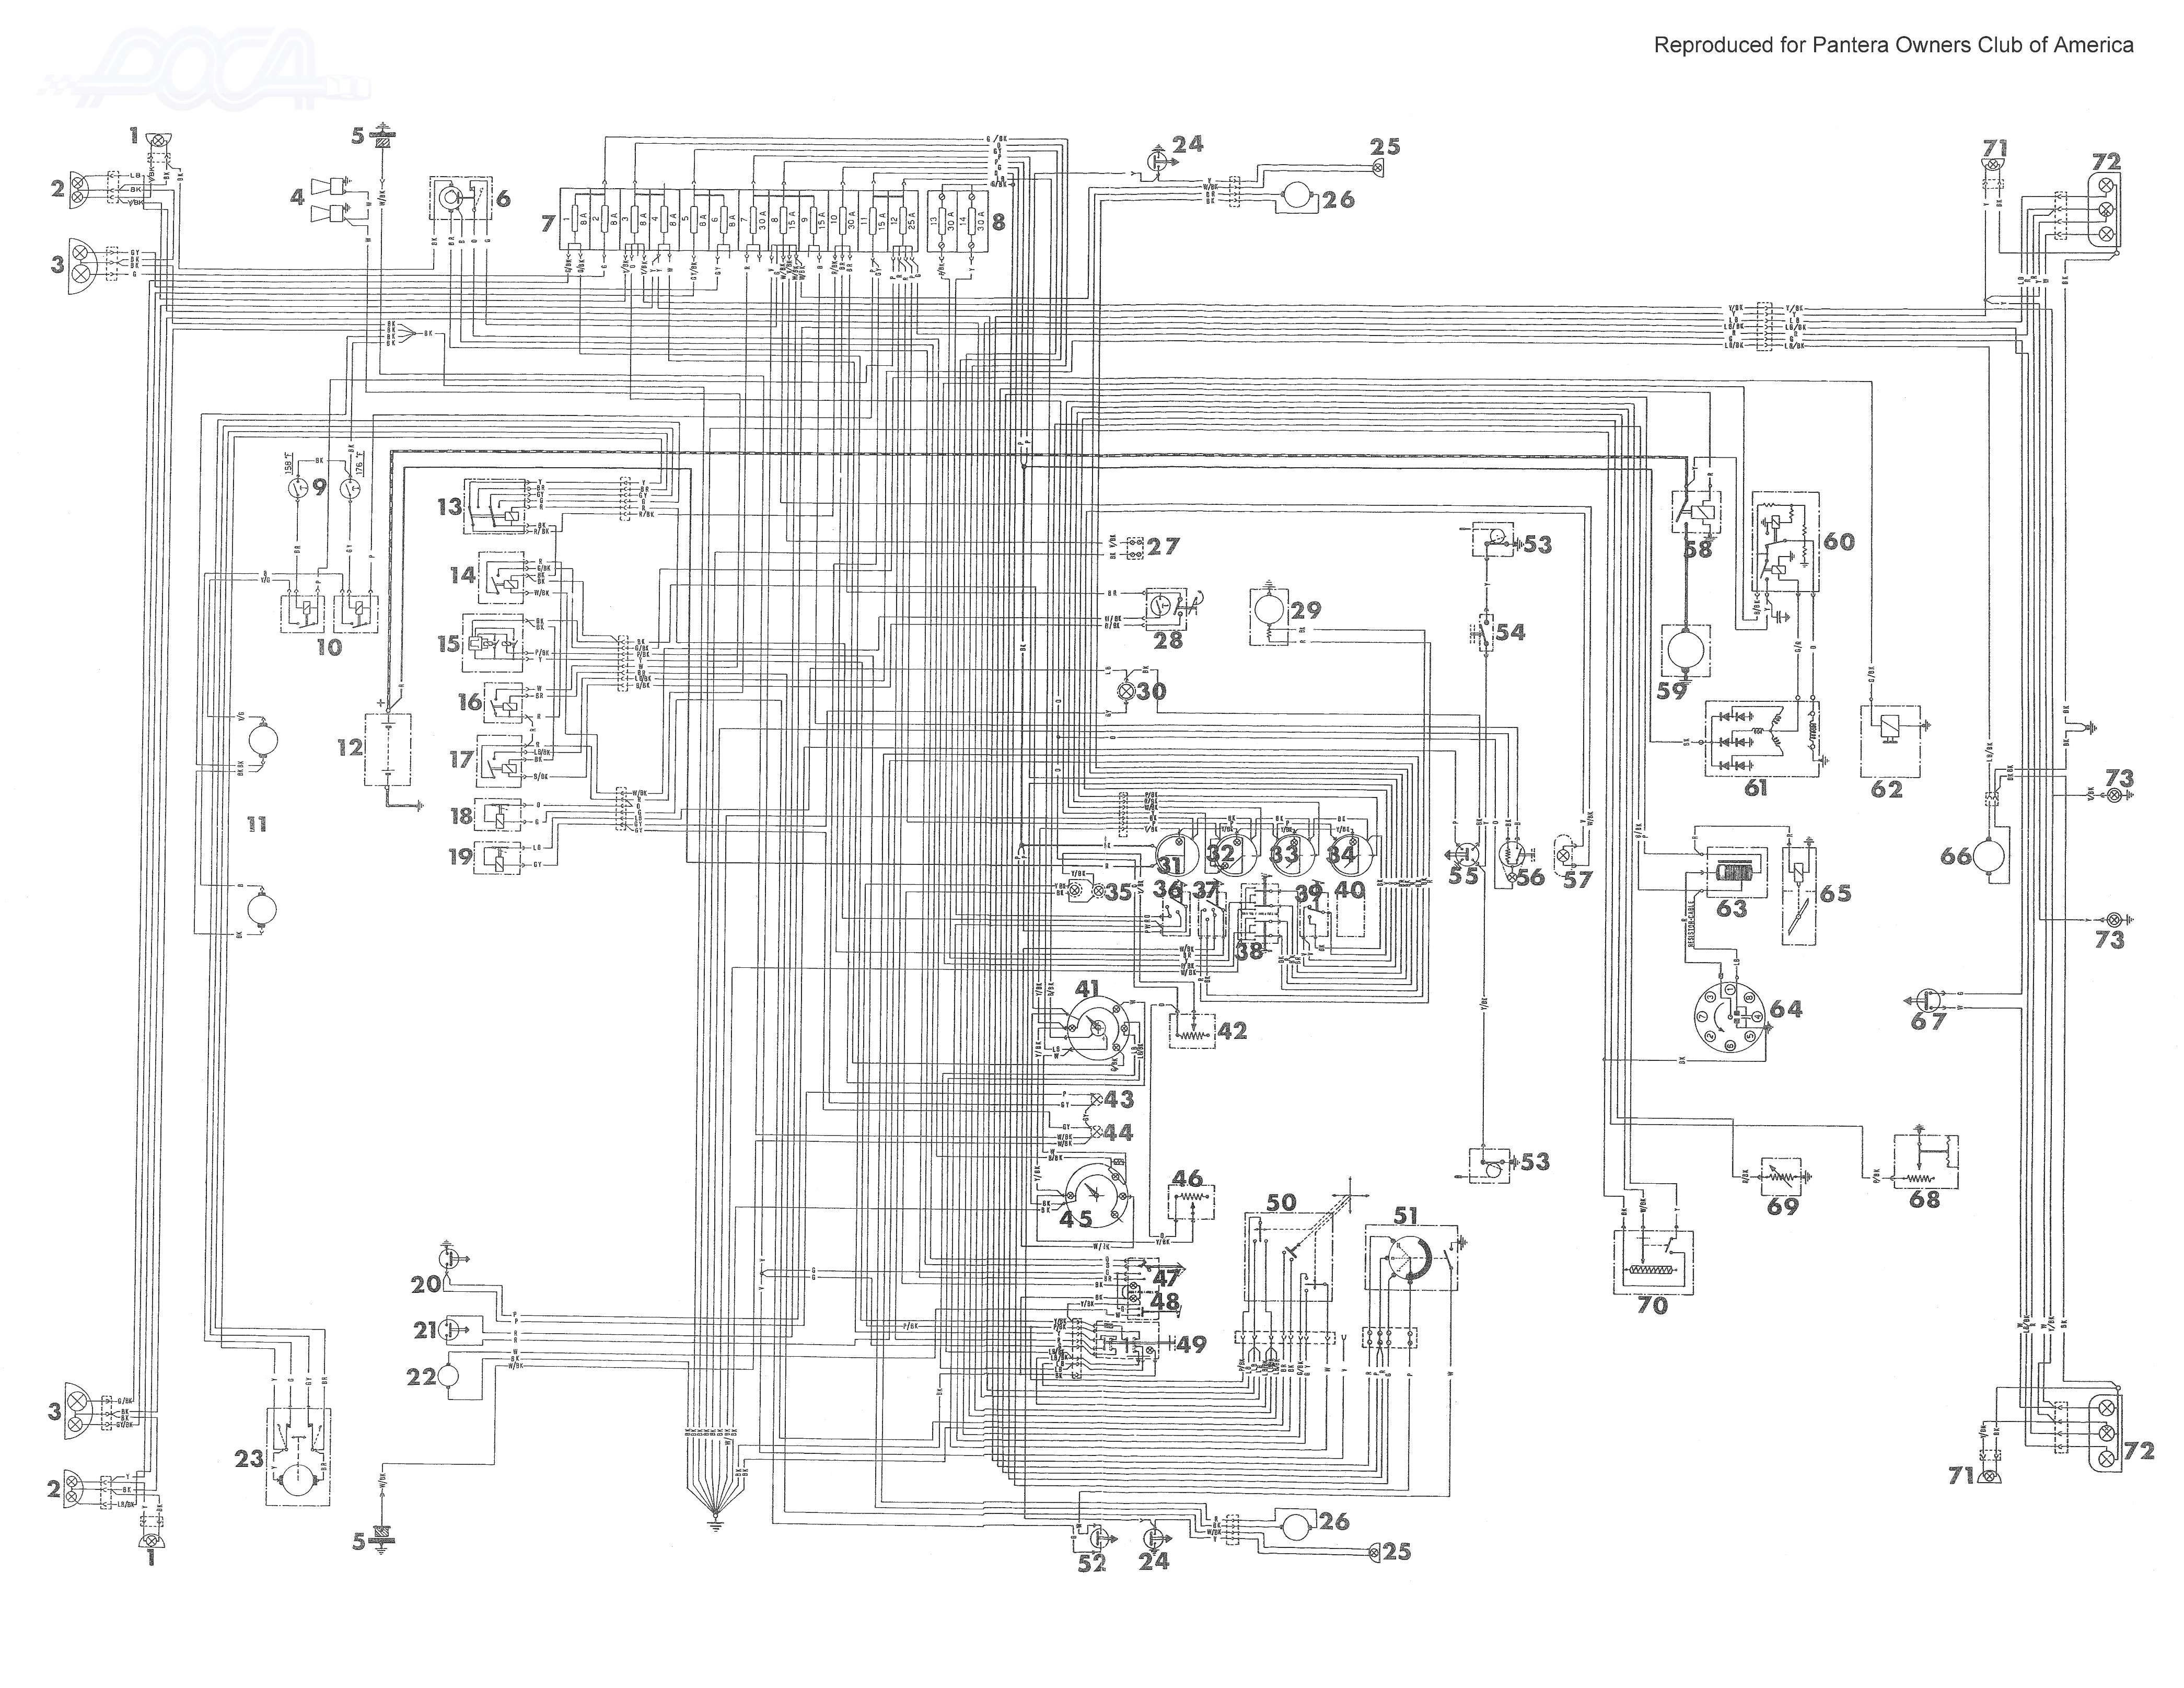 Beautiful Scania Wiring Diagram Inspiration - Electrical and Wiring ...